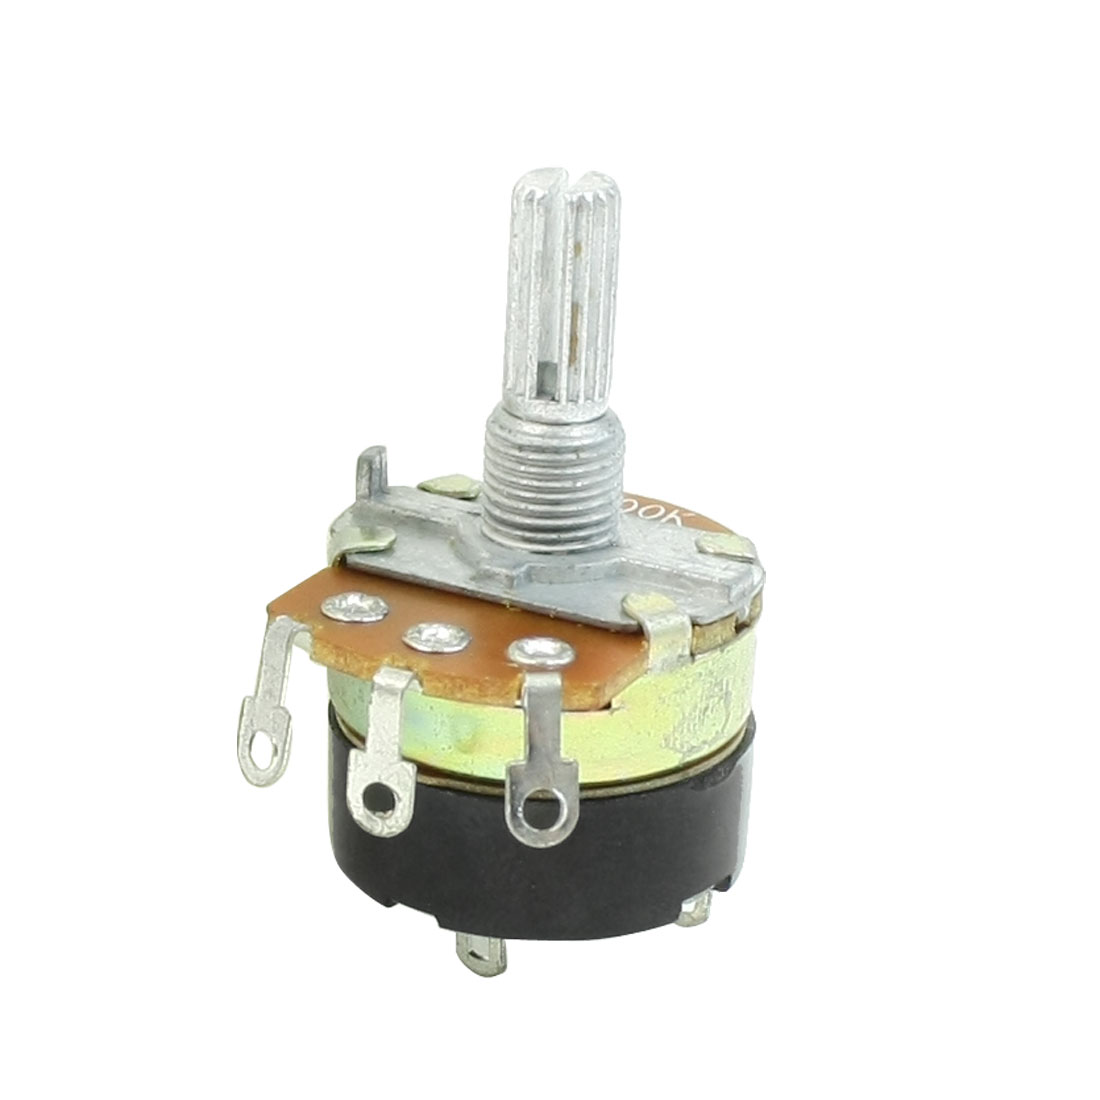 Single Linear Carbon Rotary Potentiometer Switch 500K Ohm WH138